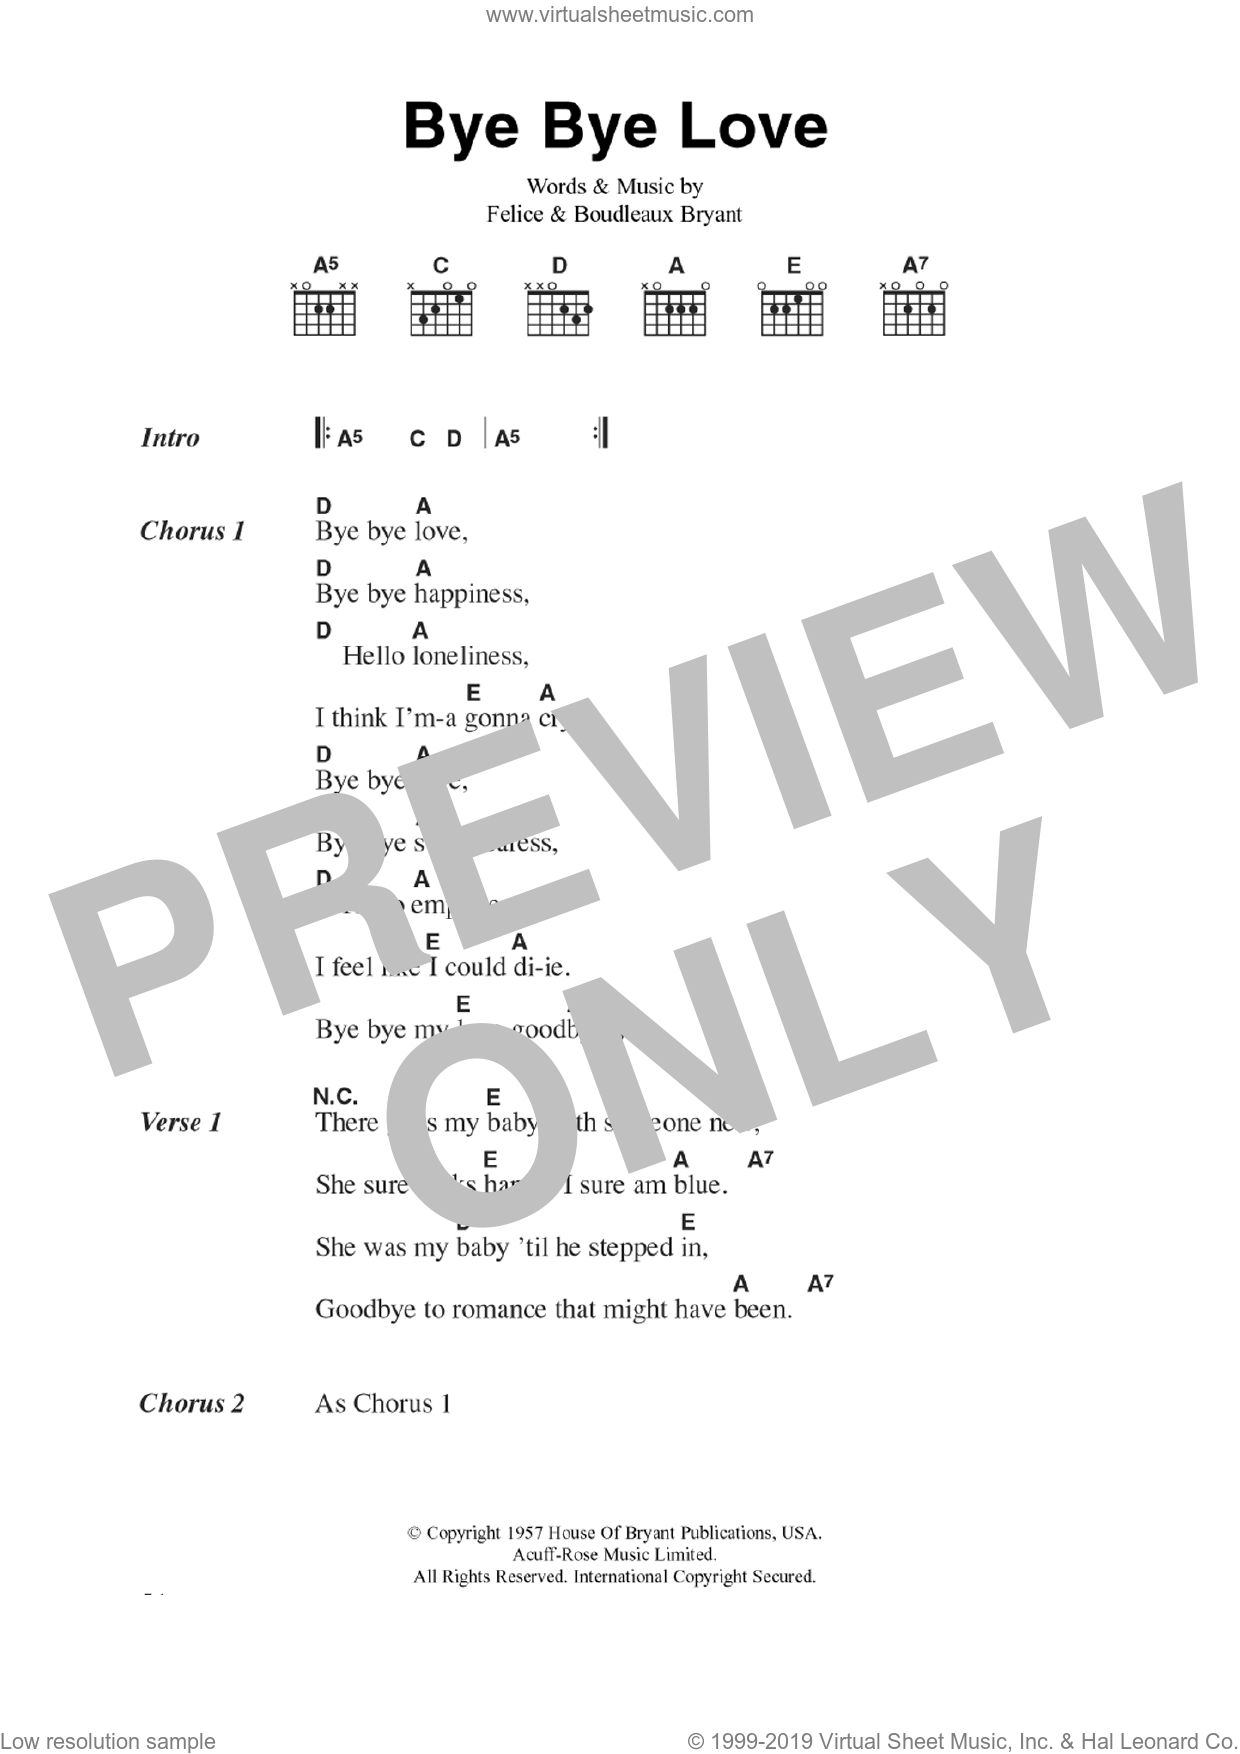 Bye Bye Love sheet music for guitar (chords) by Everly Brothers, The Everly Brothers, Boudleaux Bryant and Felice Bryant, intermediate skill level